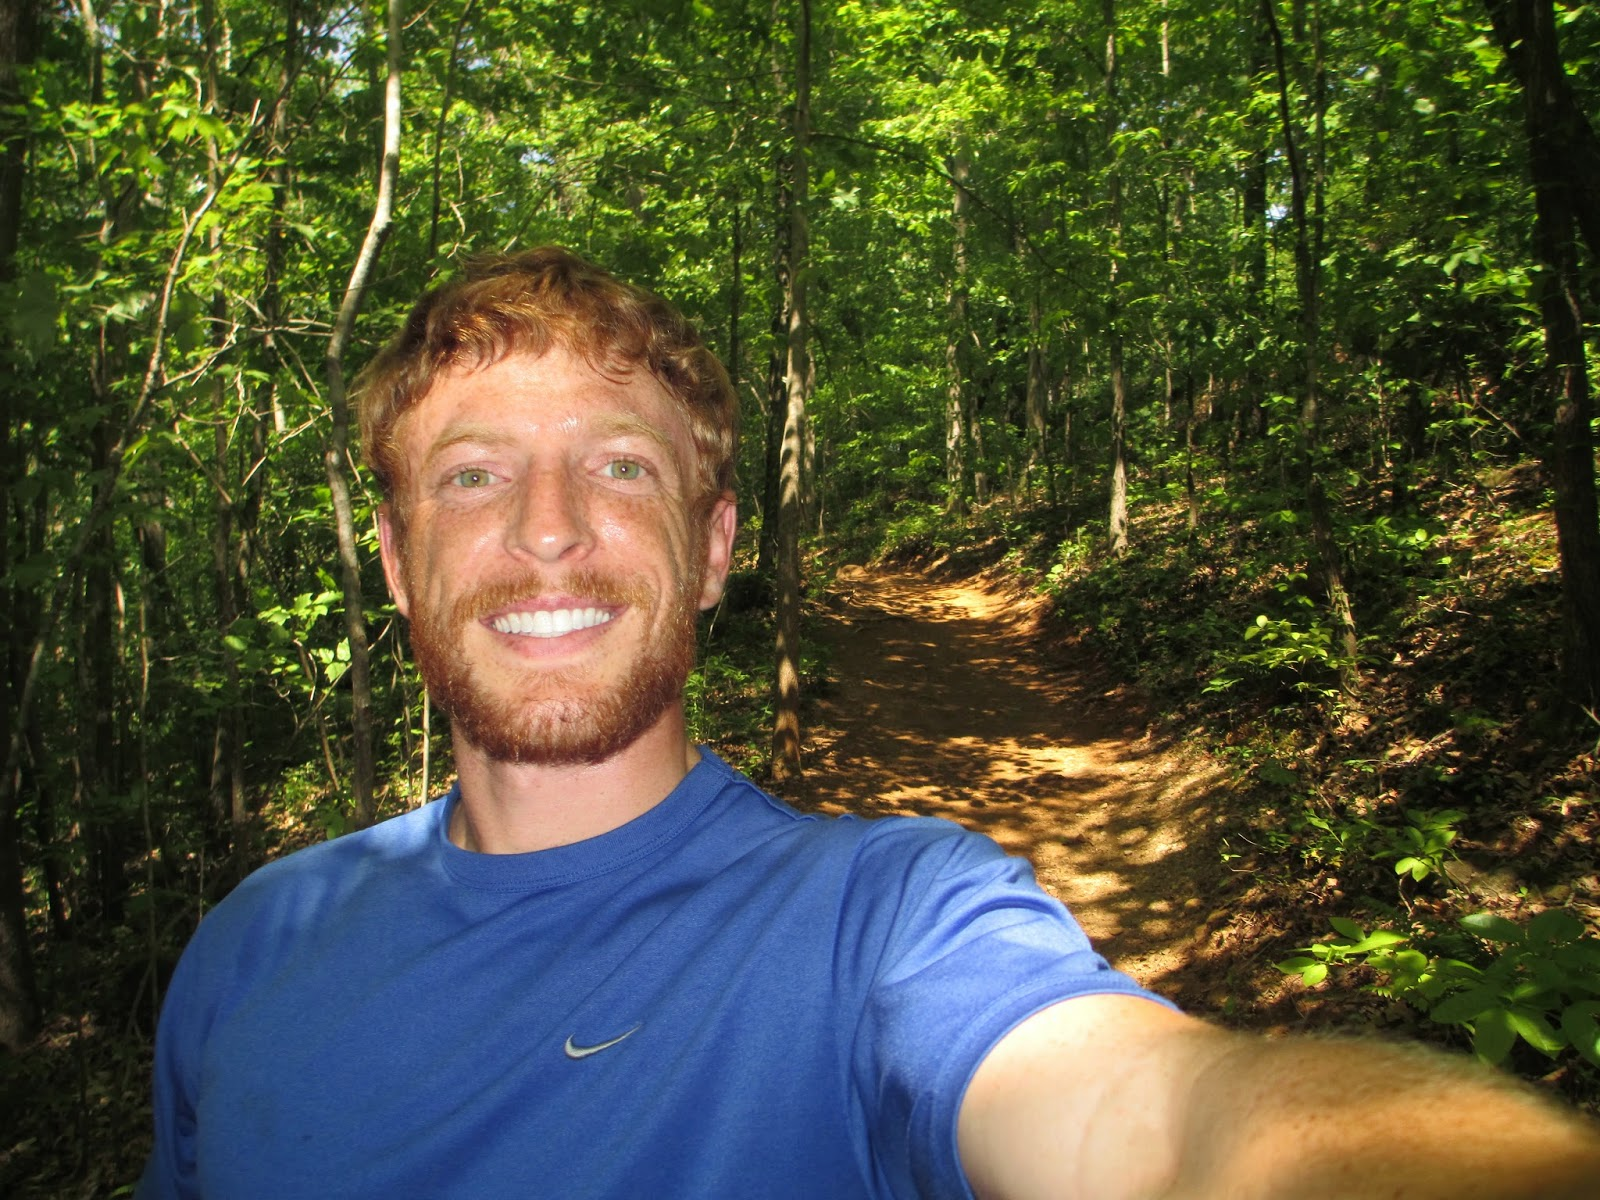 Greenville Outdoor Fitness, Trail Run